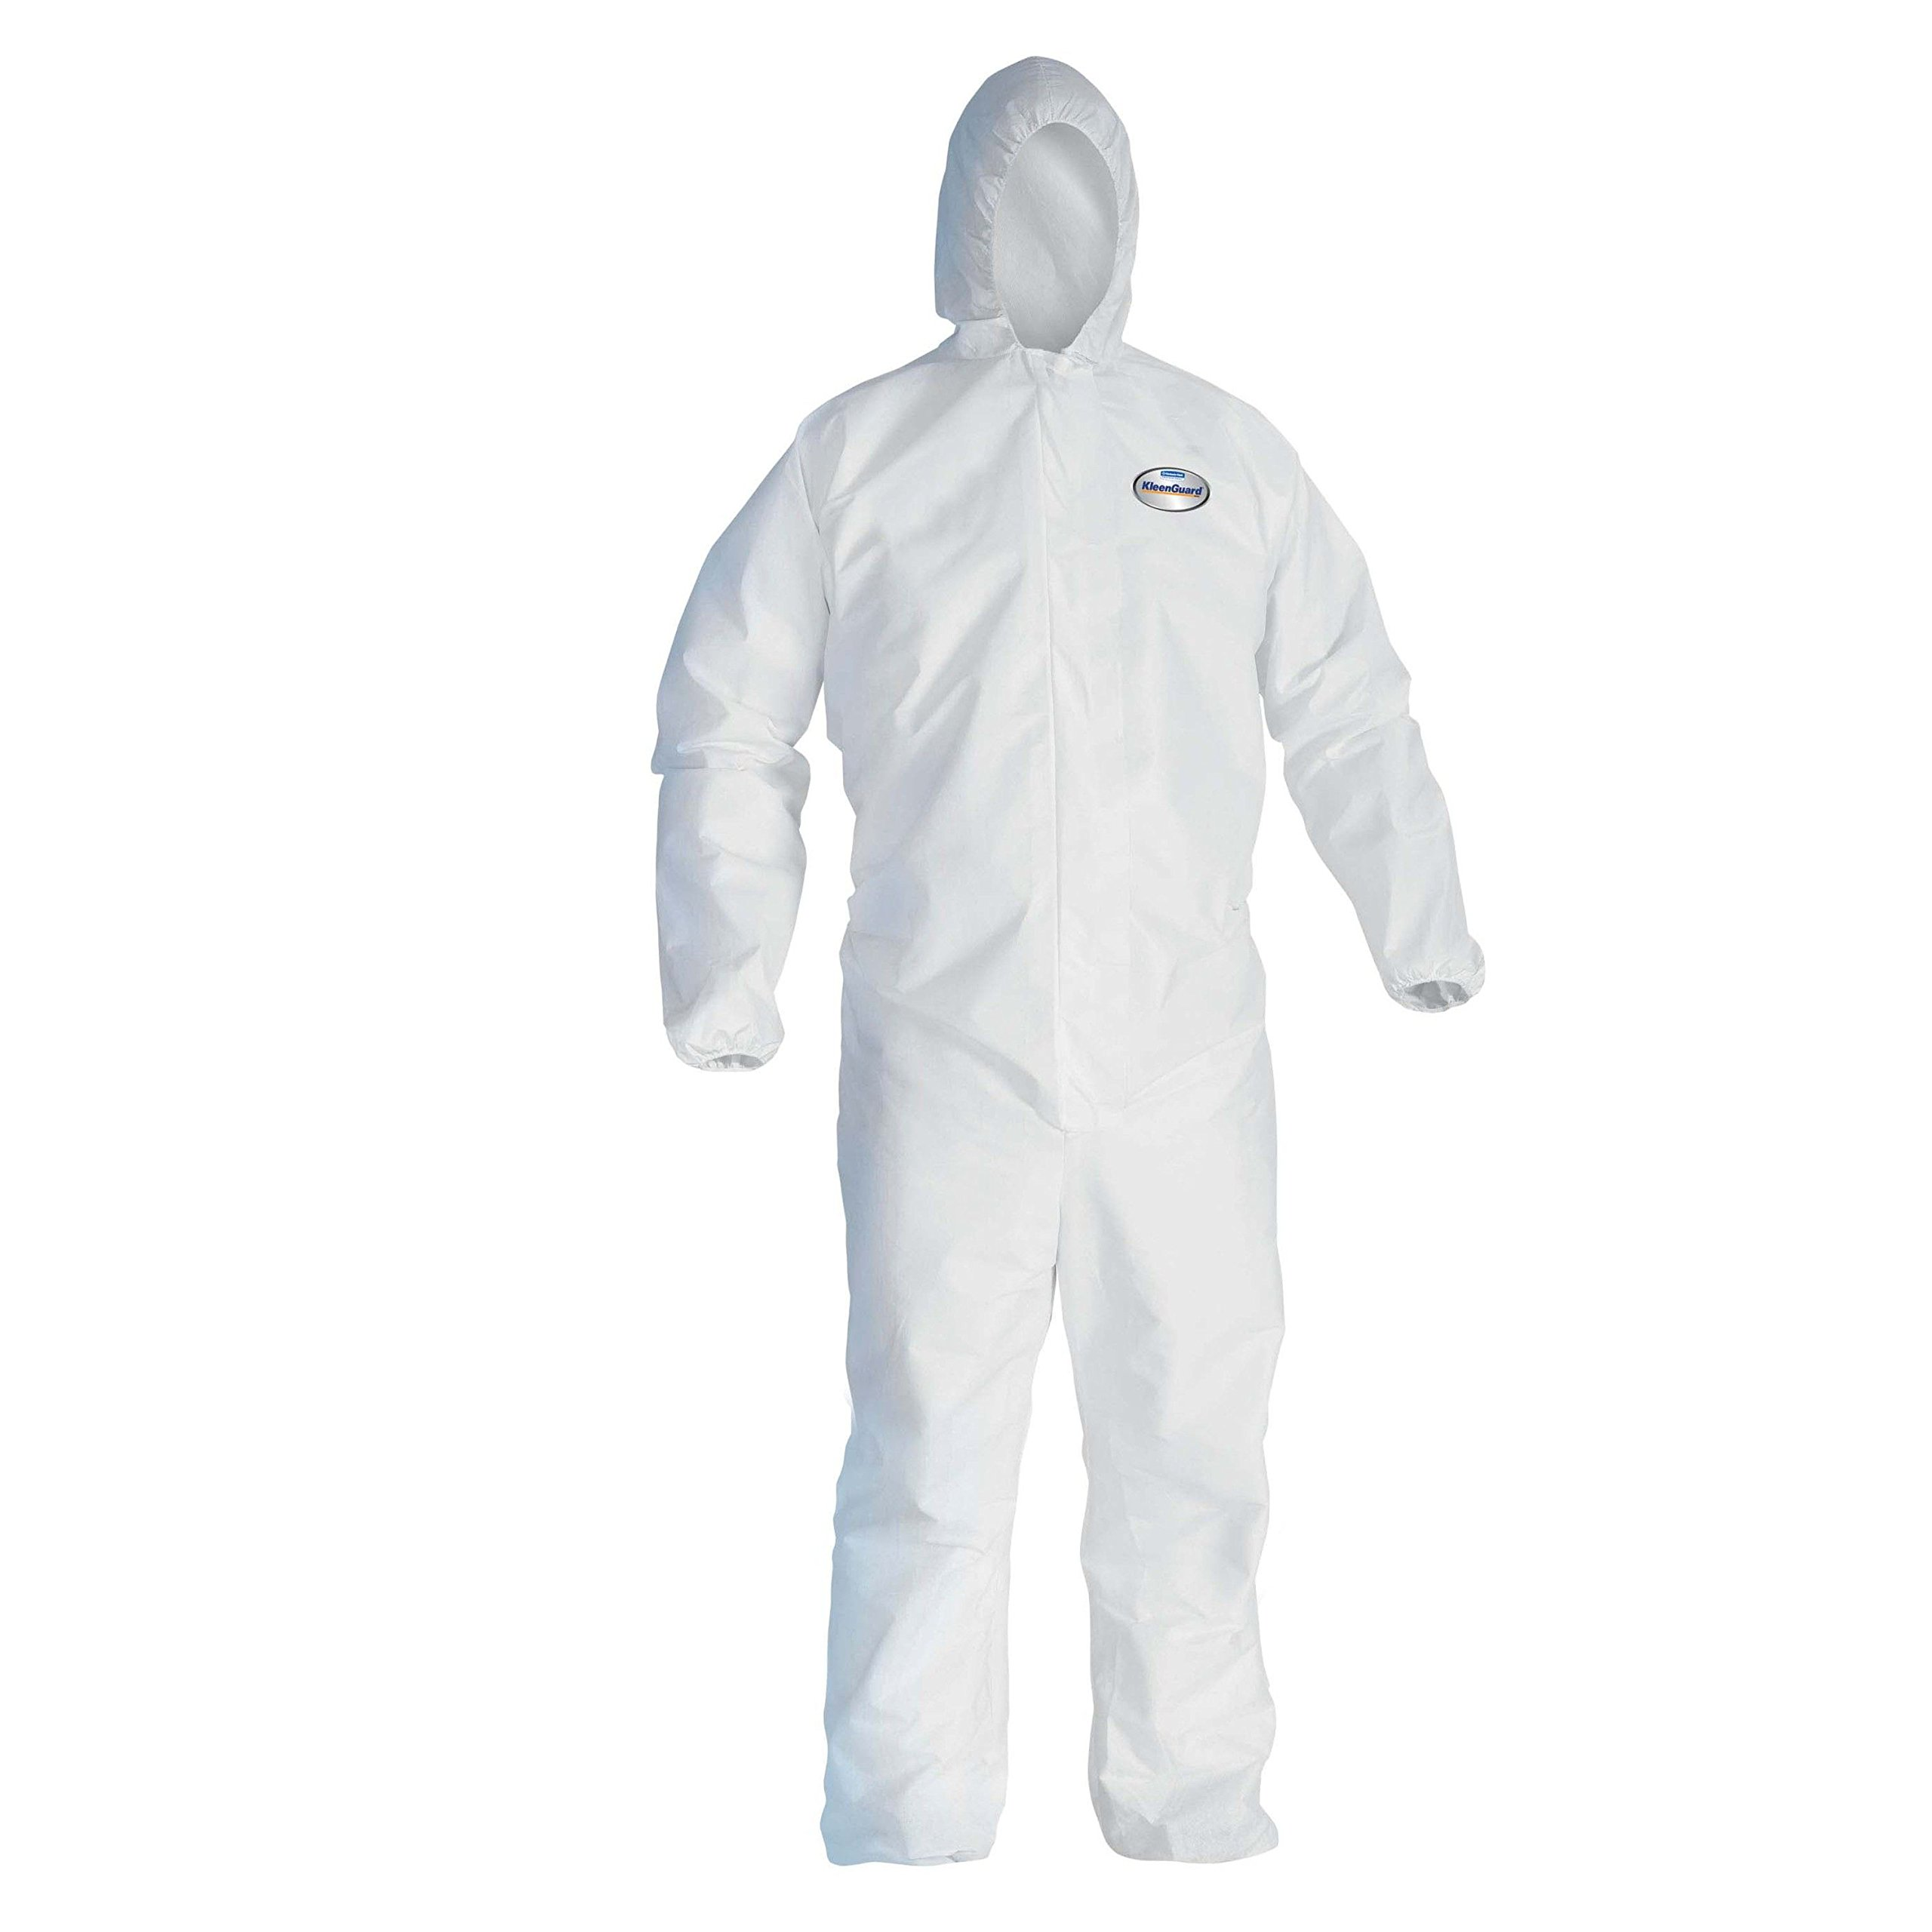 Kleenguard 41172 A40 Liquid and Particle Protection Coveralls, X-Large, White (Pack of 25)